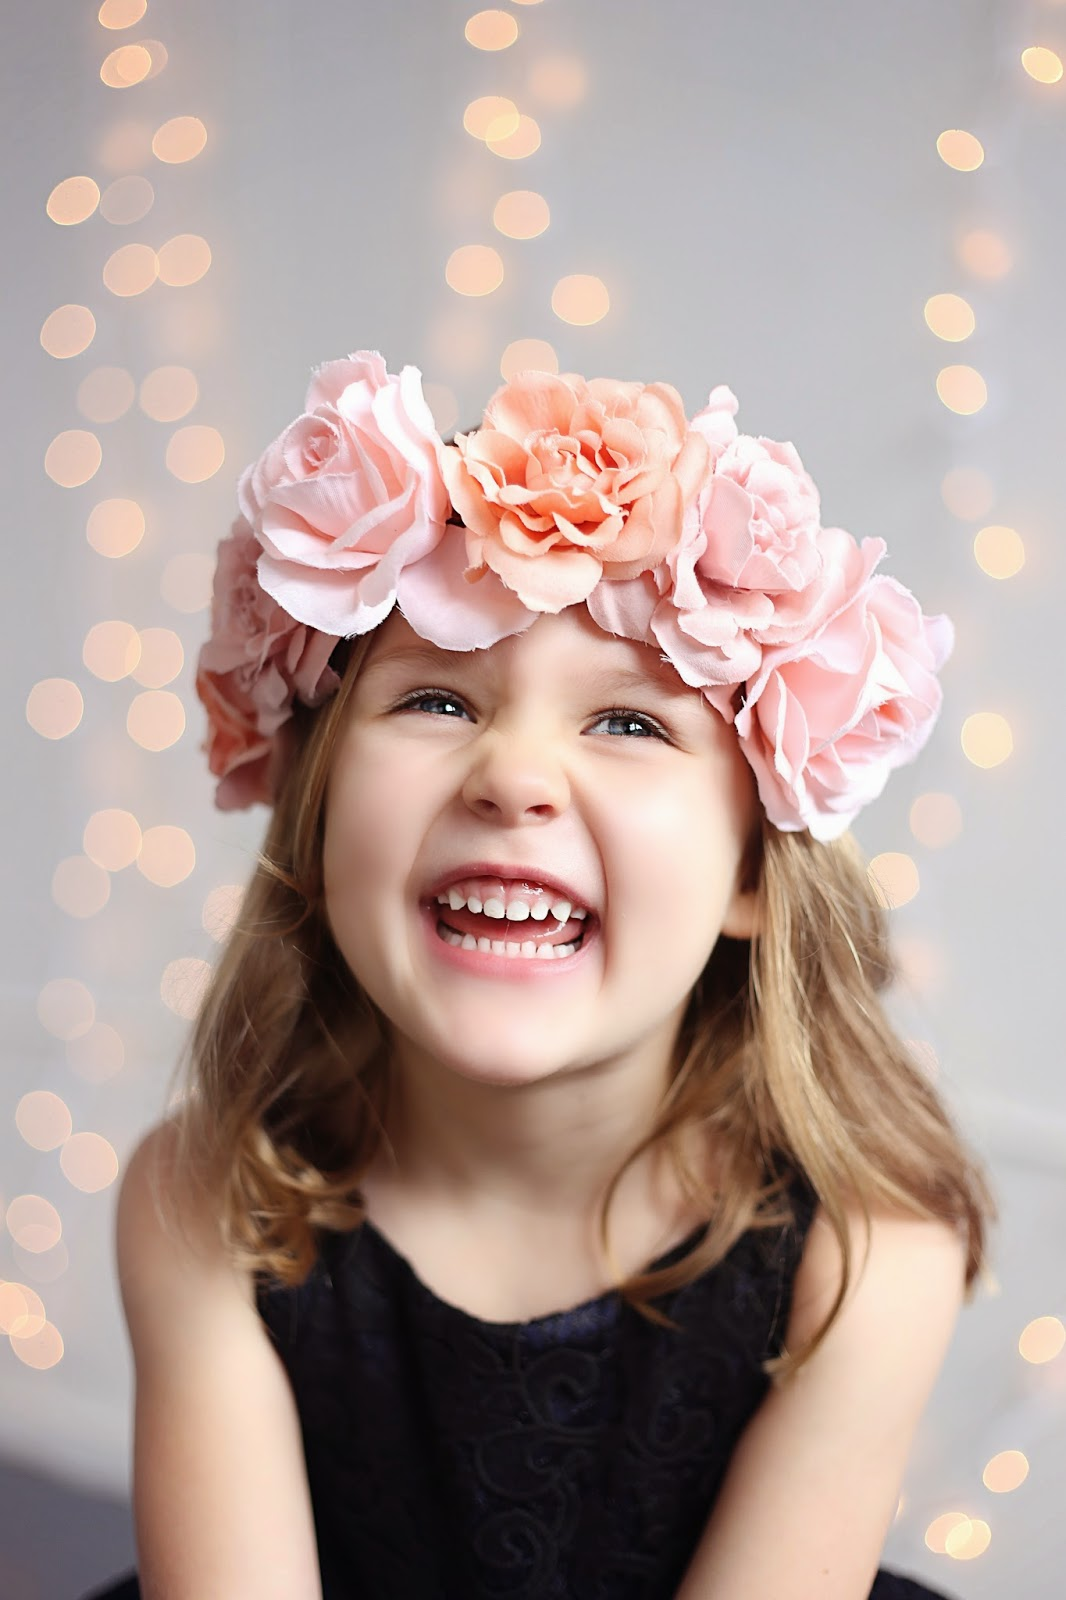 spotted stills photography, portland, oregon, family, photographer, studio, natural light, jenn pacurar, pictures, floral crown, child photographer, girl with floral crown, christmas, holiday